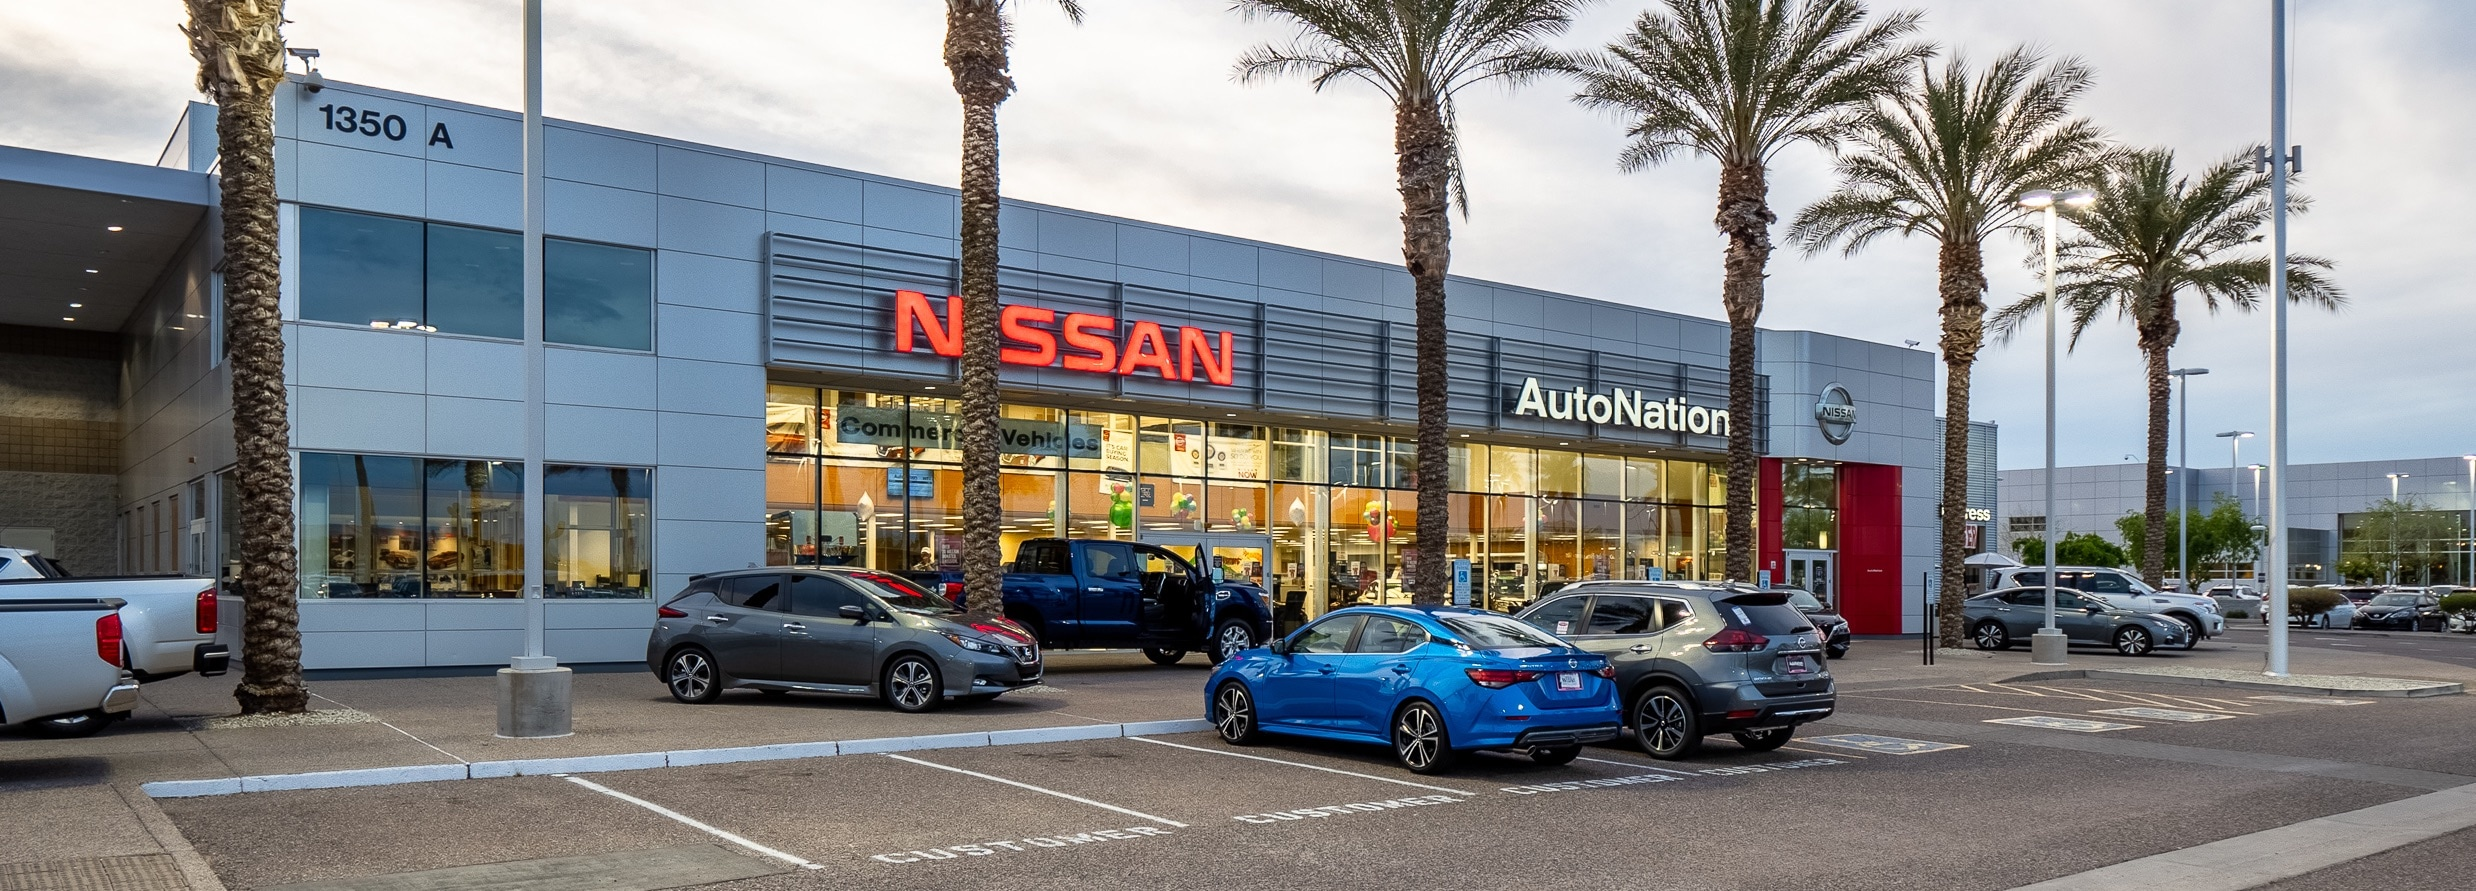 Exterior view of AutoNation Nissan Chandler